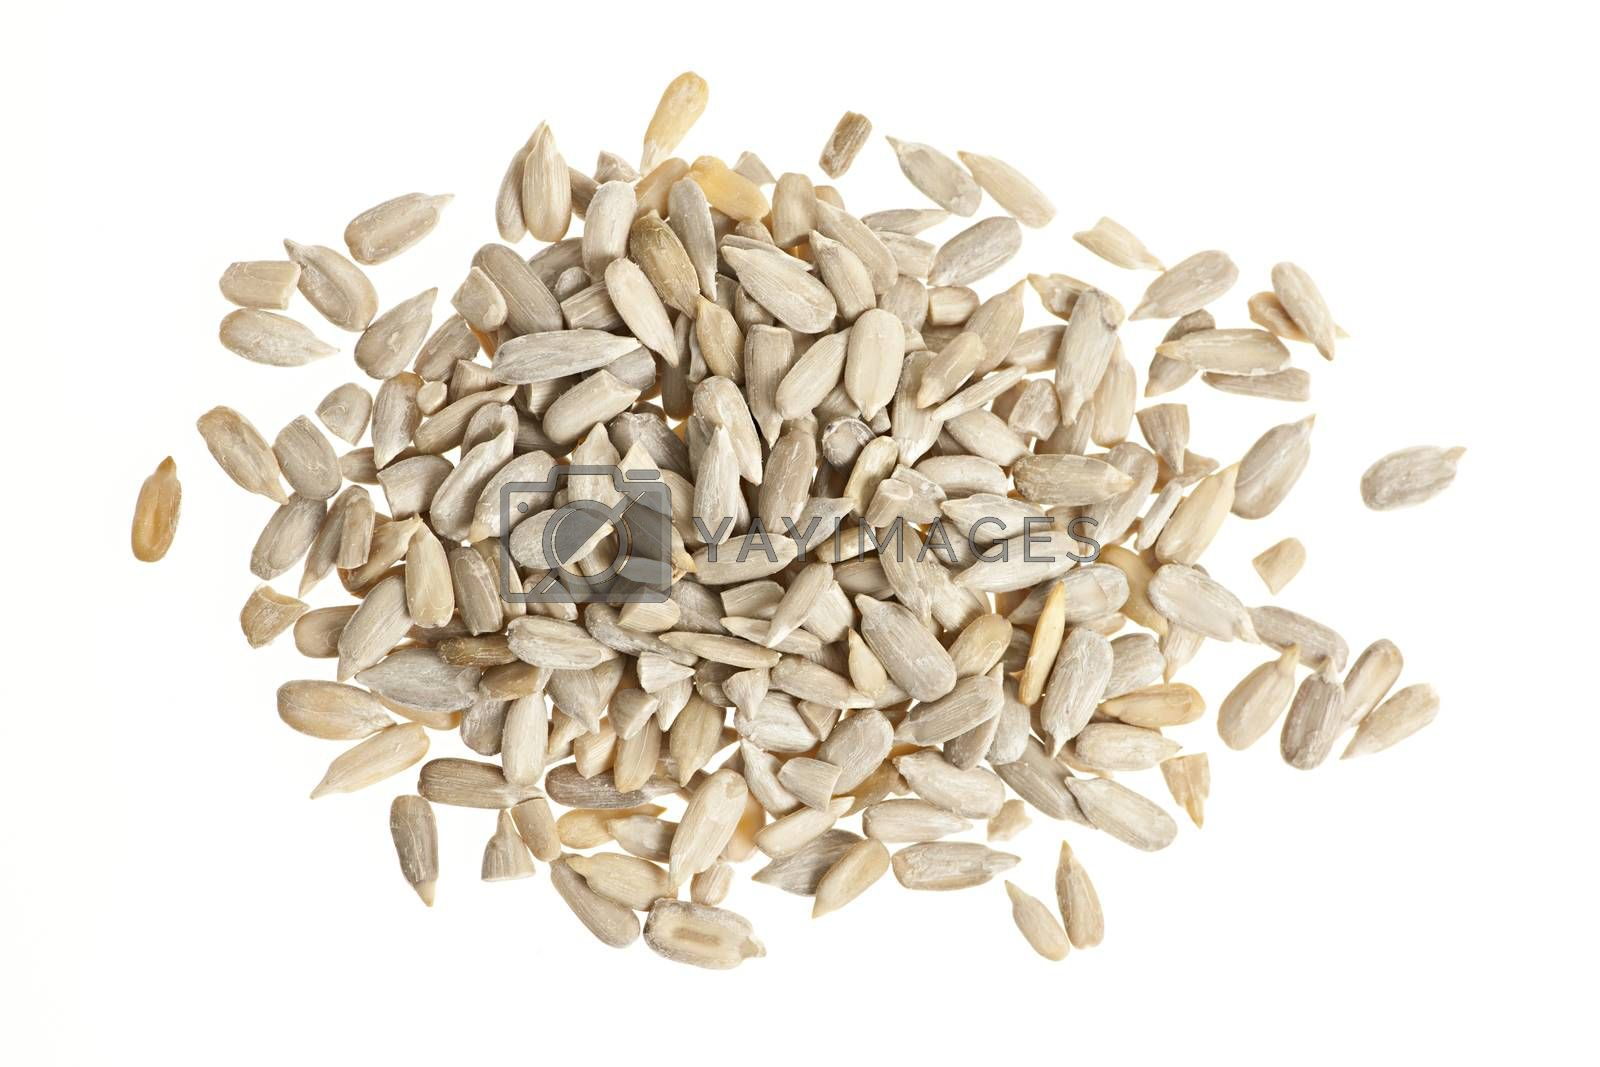 Heap of raw shelled sunflower seeds isolated on white background from above